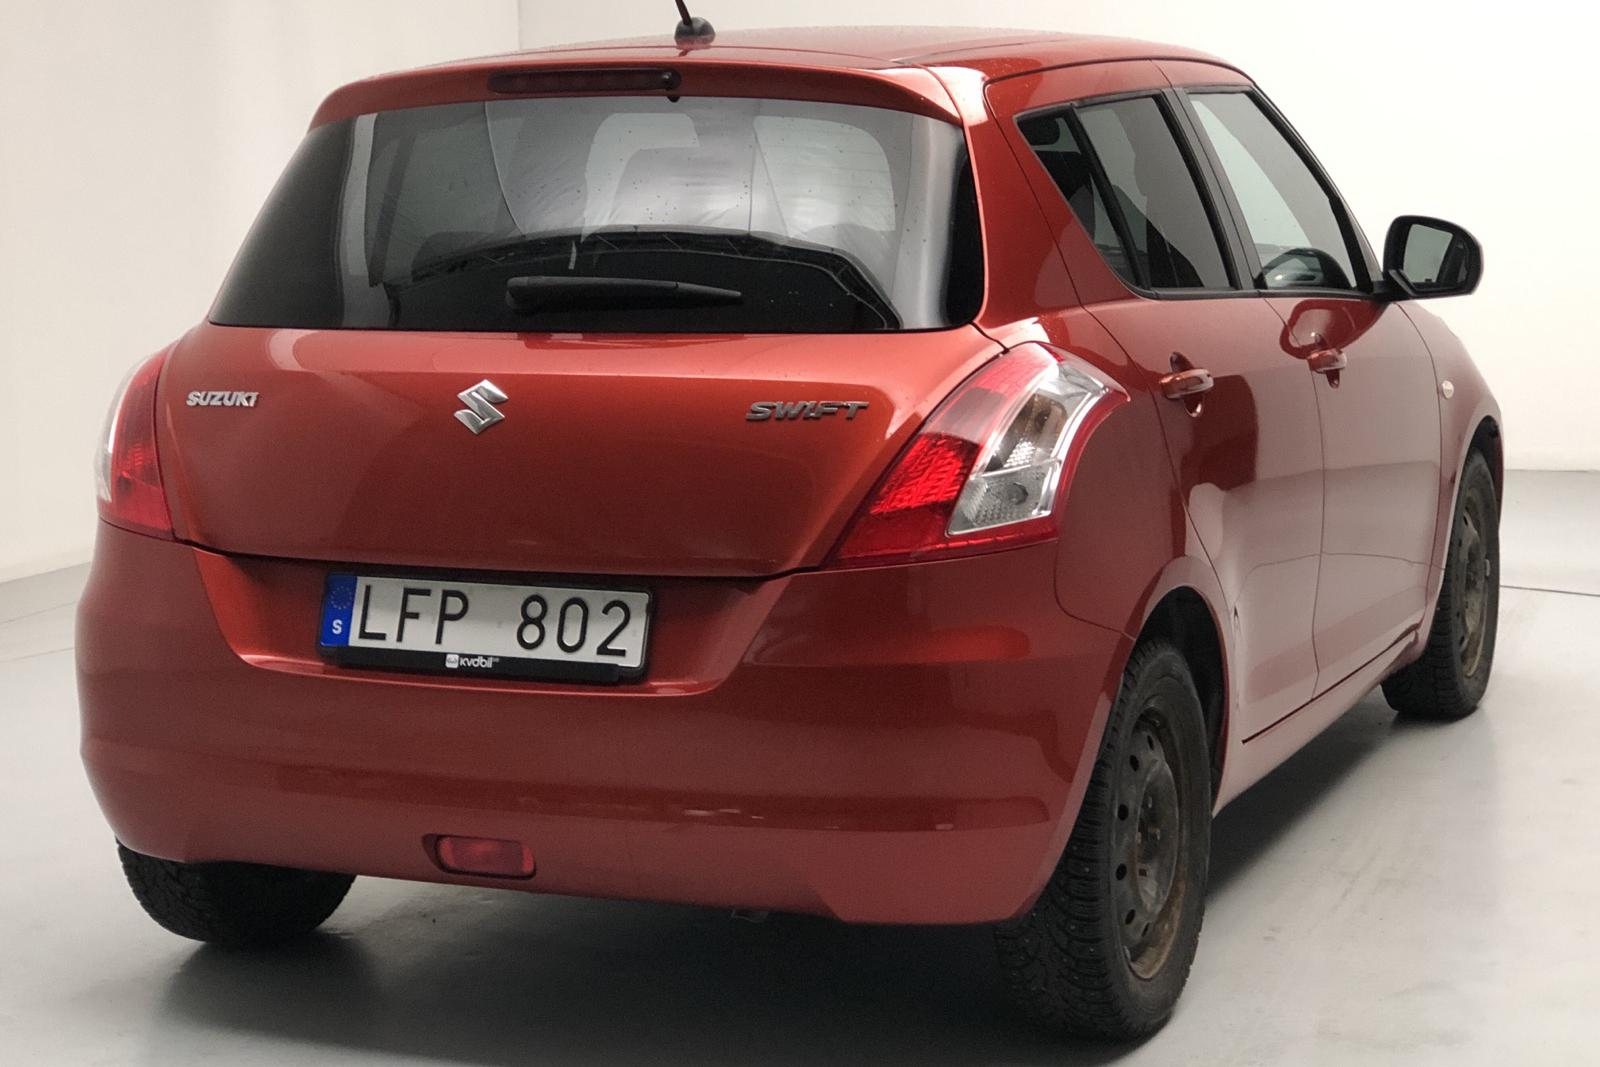 Suzuki Swift 1.2 5dr (94hk) - 4 611 mil - Manuell - orange - 2011